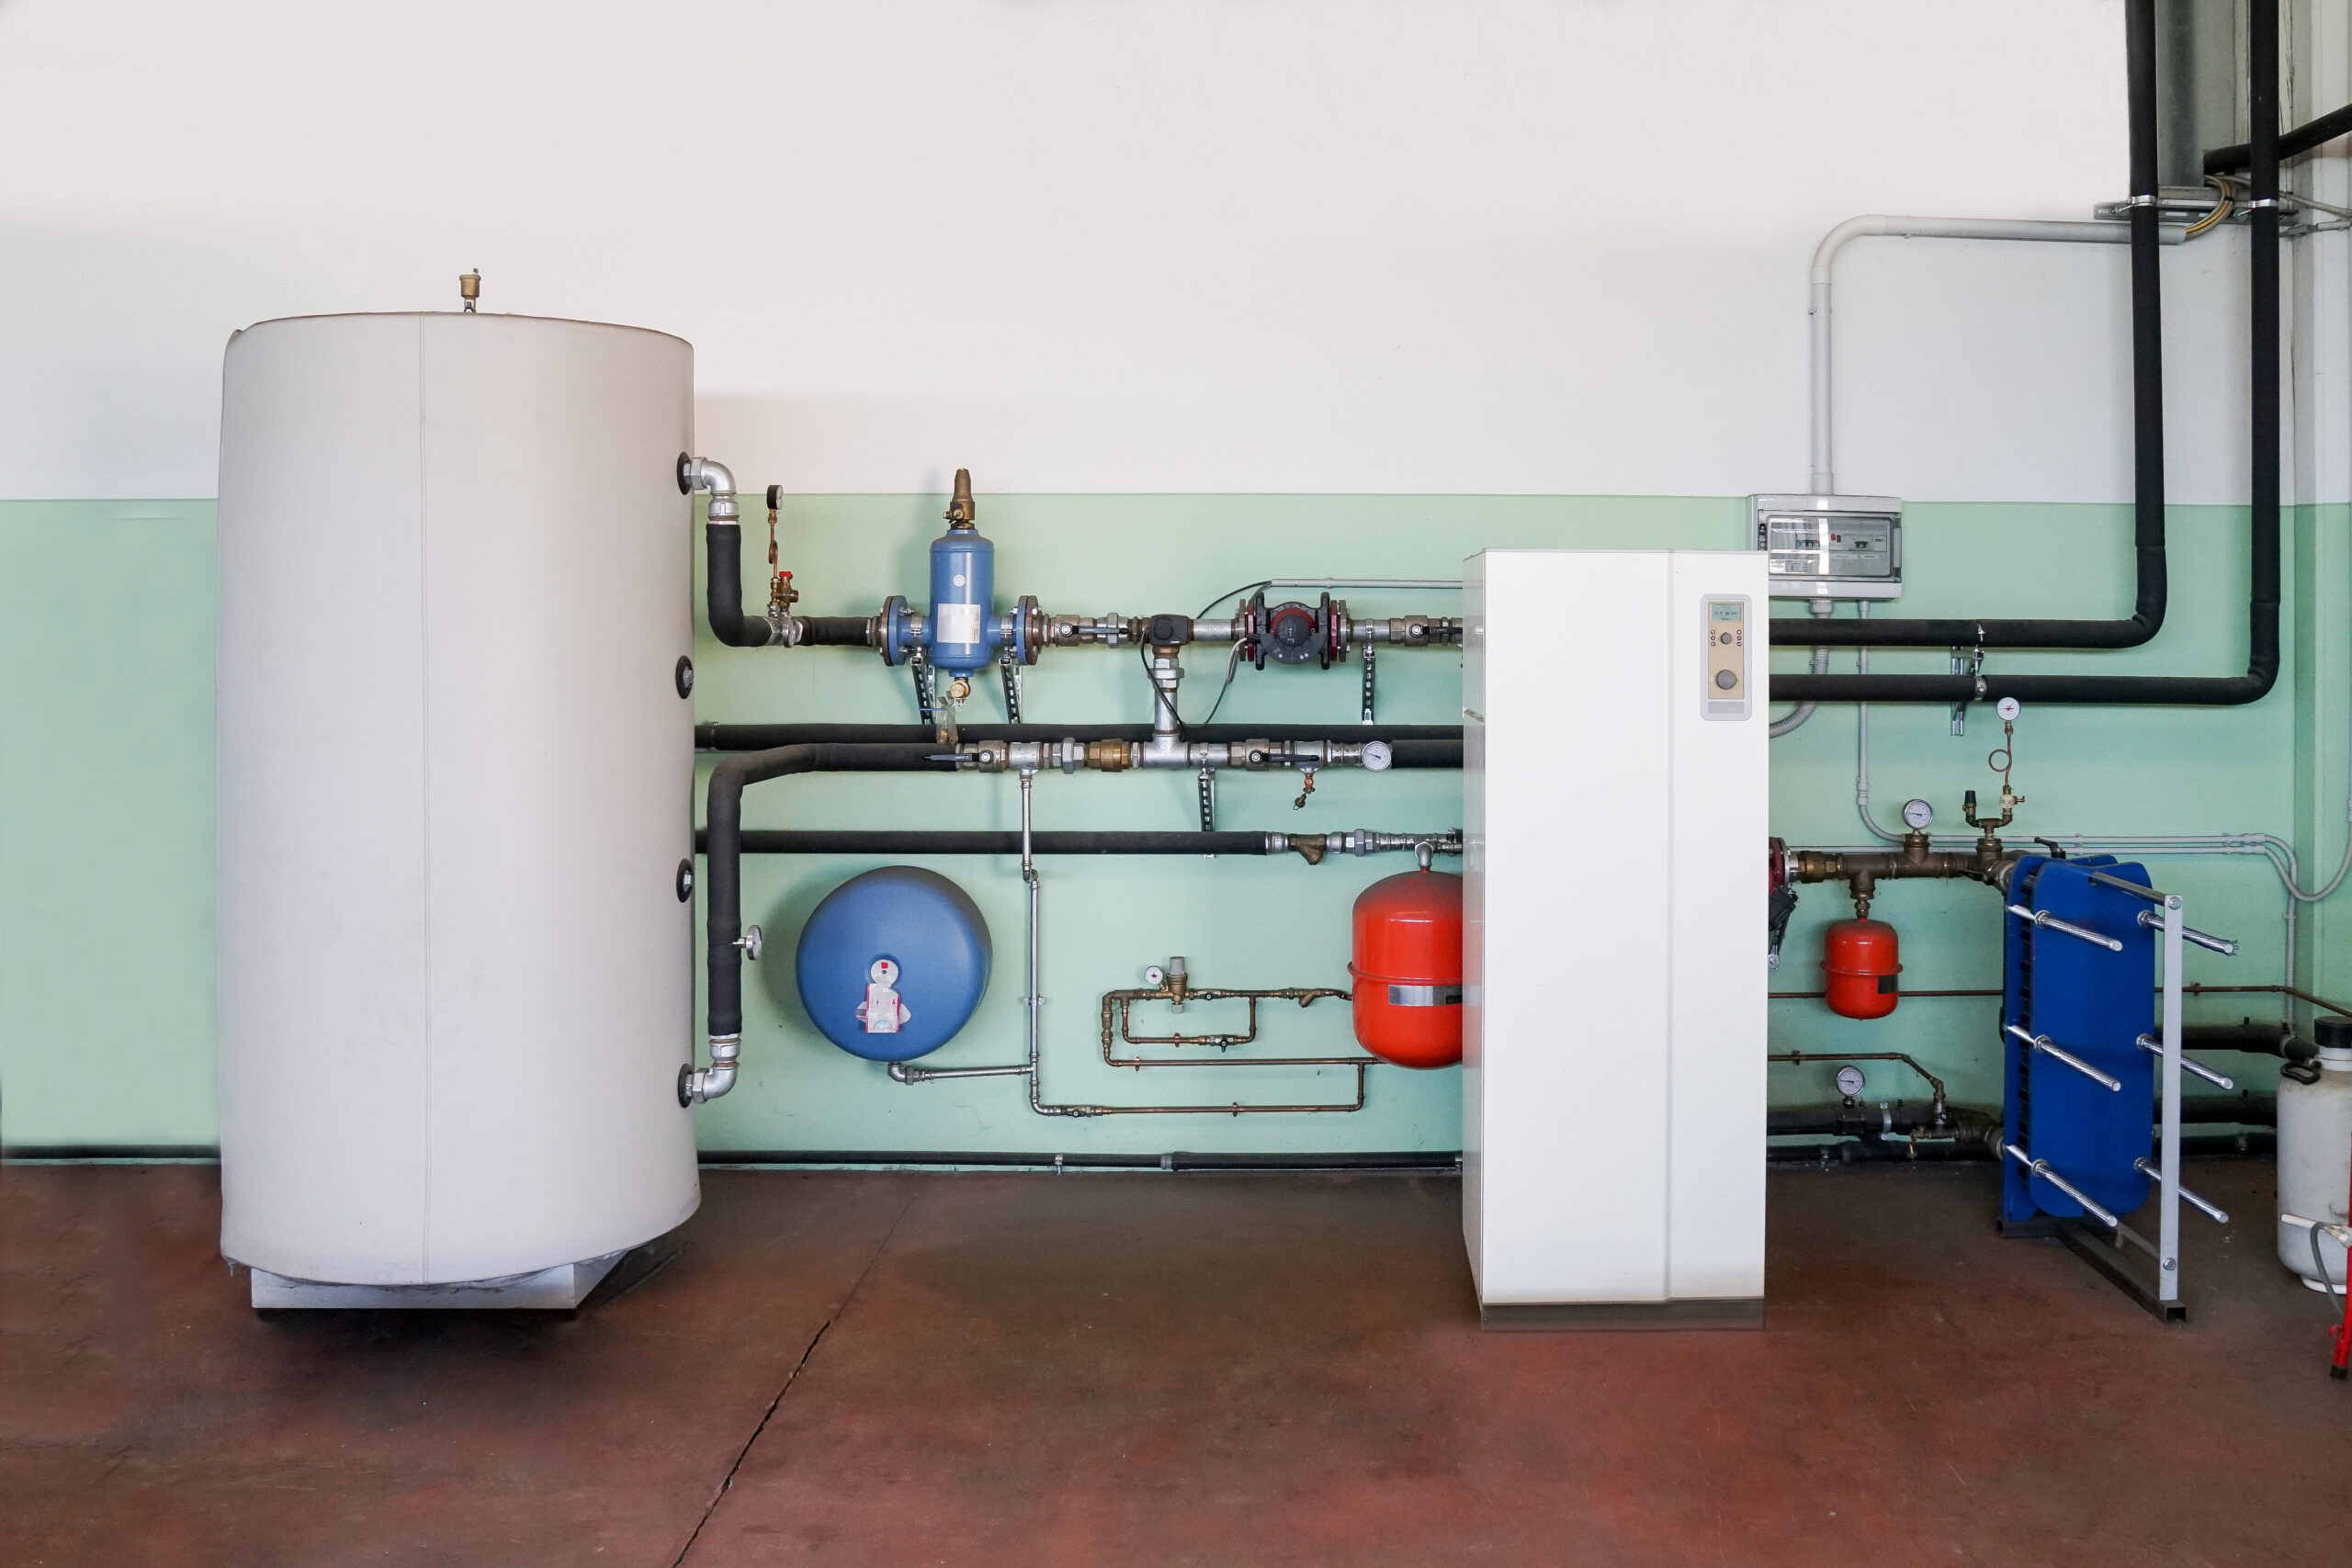 Advantages And Disadvantages Of Heat Pumps